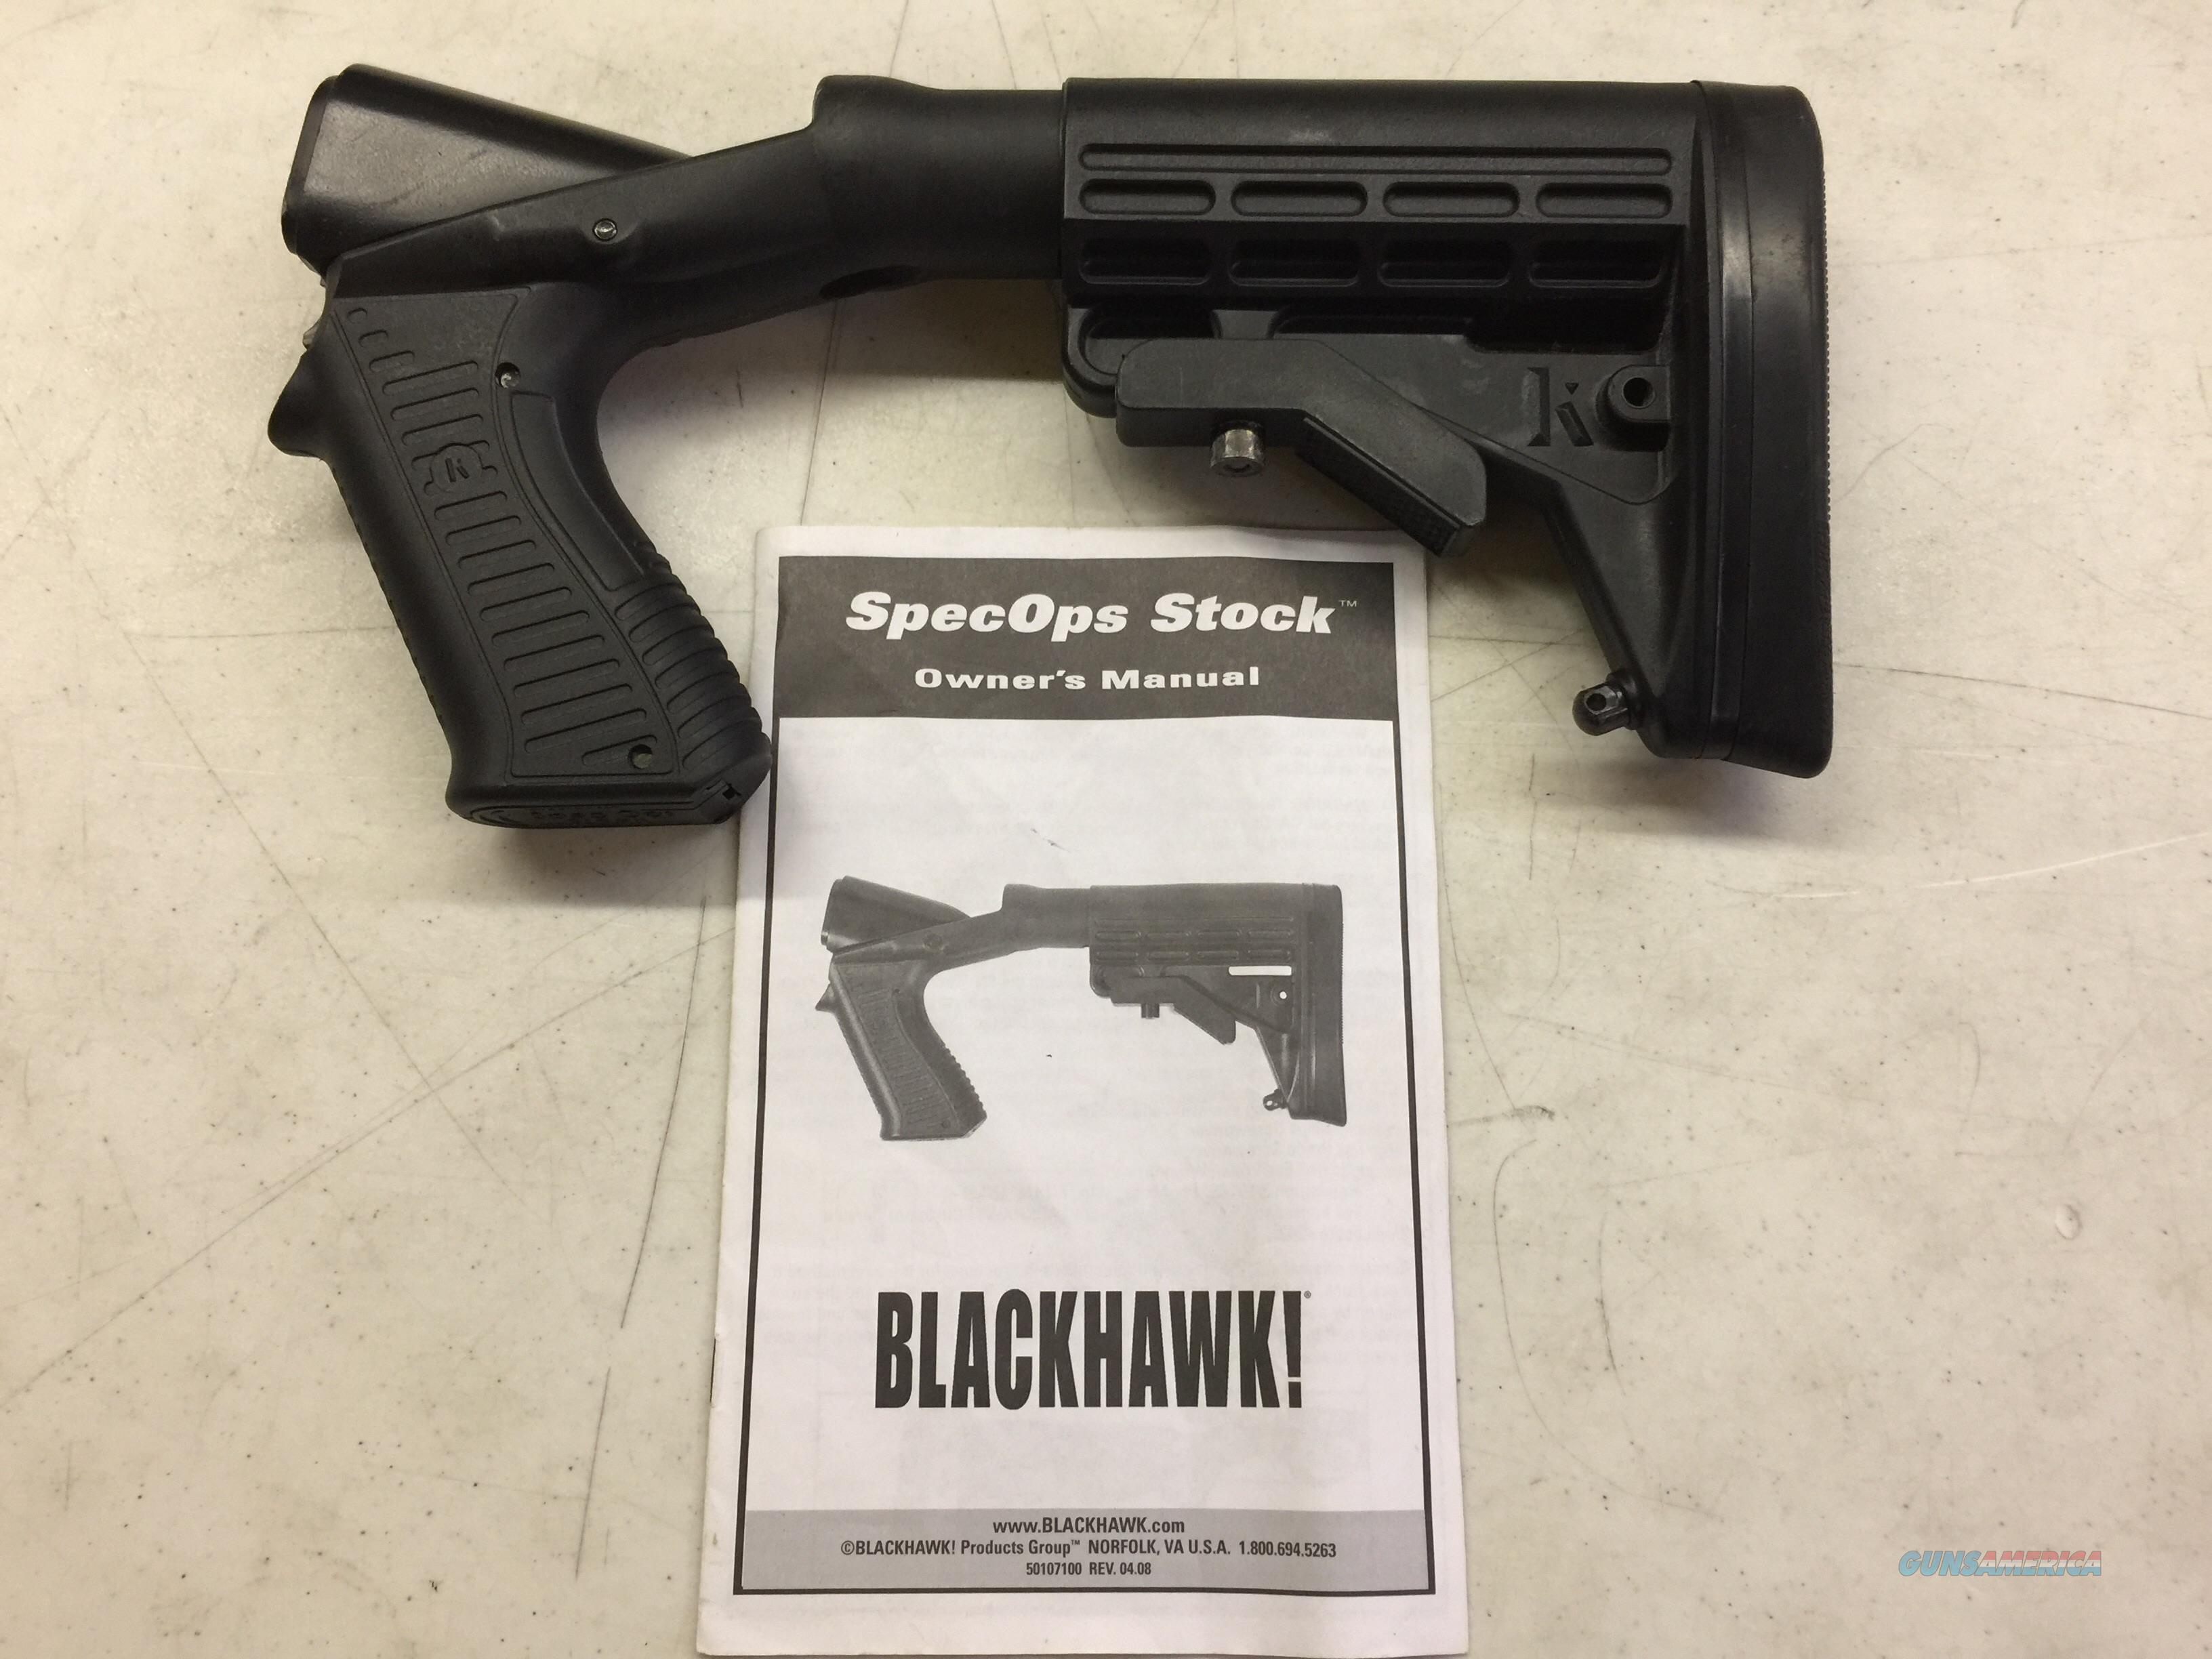 Blackhawk Specops Stock Gen 1 Rem 870 12ga  Non-Guns > Gunstocks, Grips & Wood